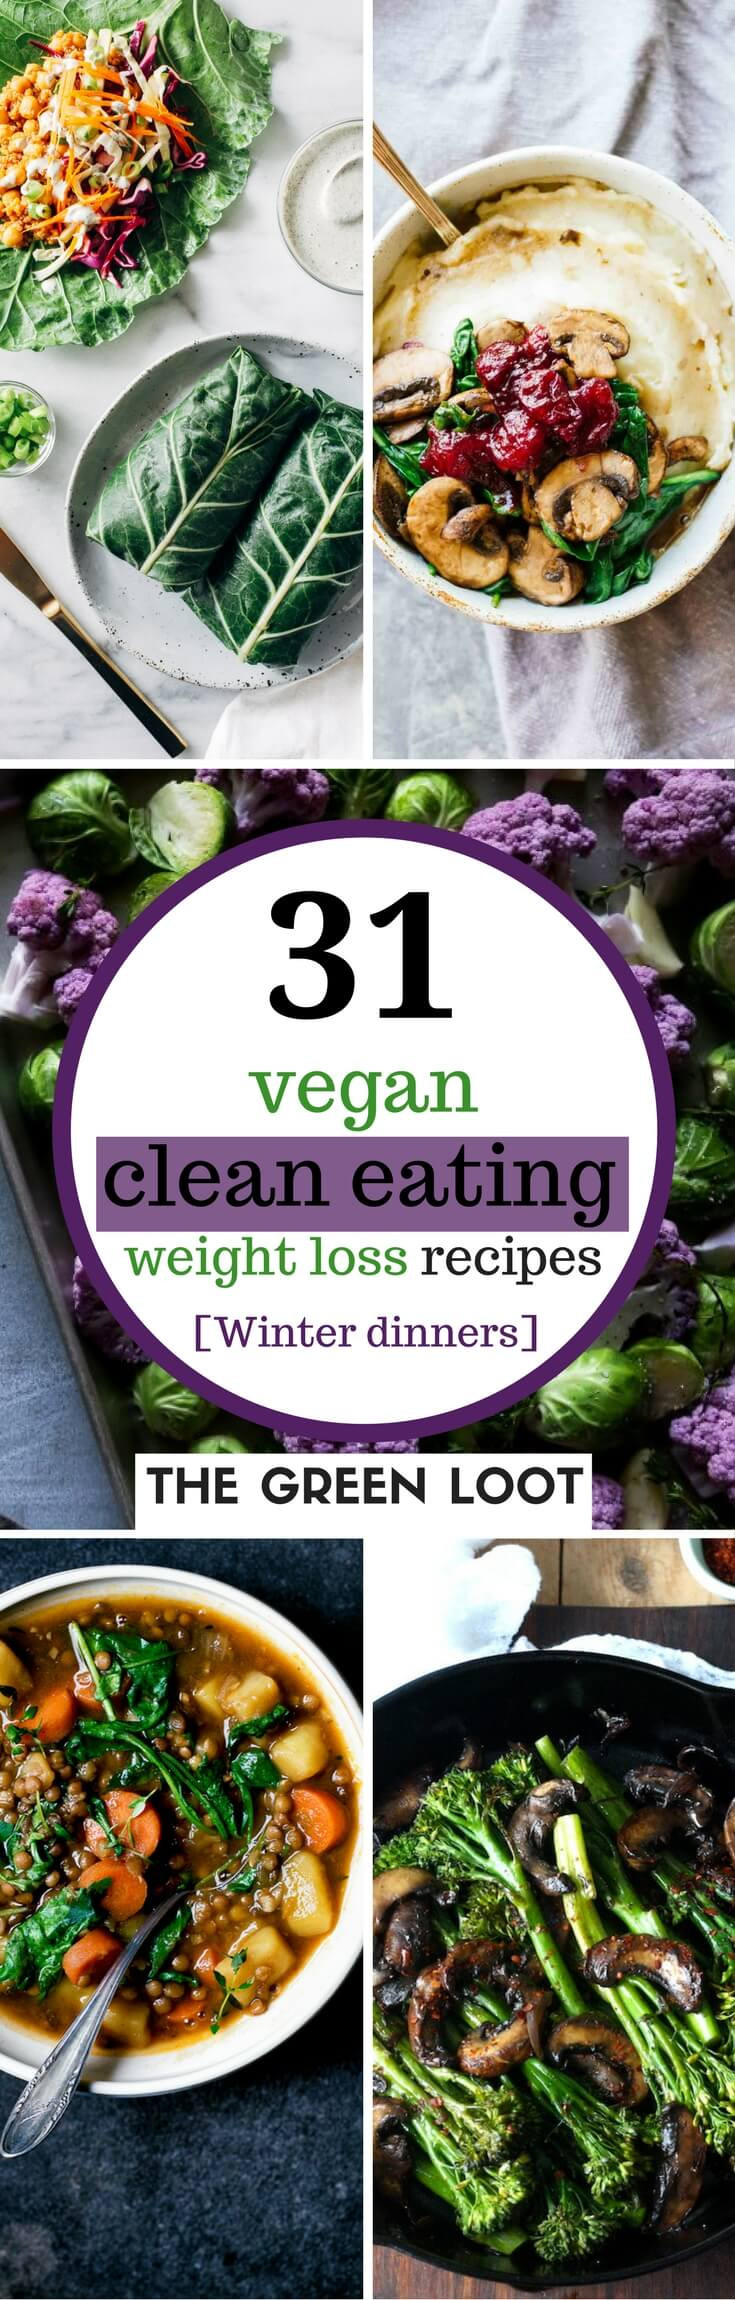 Clean Eating For Weight Loss  31 Delish Vegan Clean Eating Recipes for Weight Loss